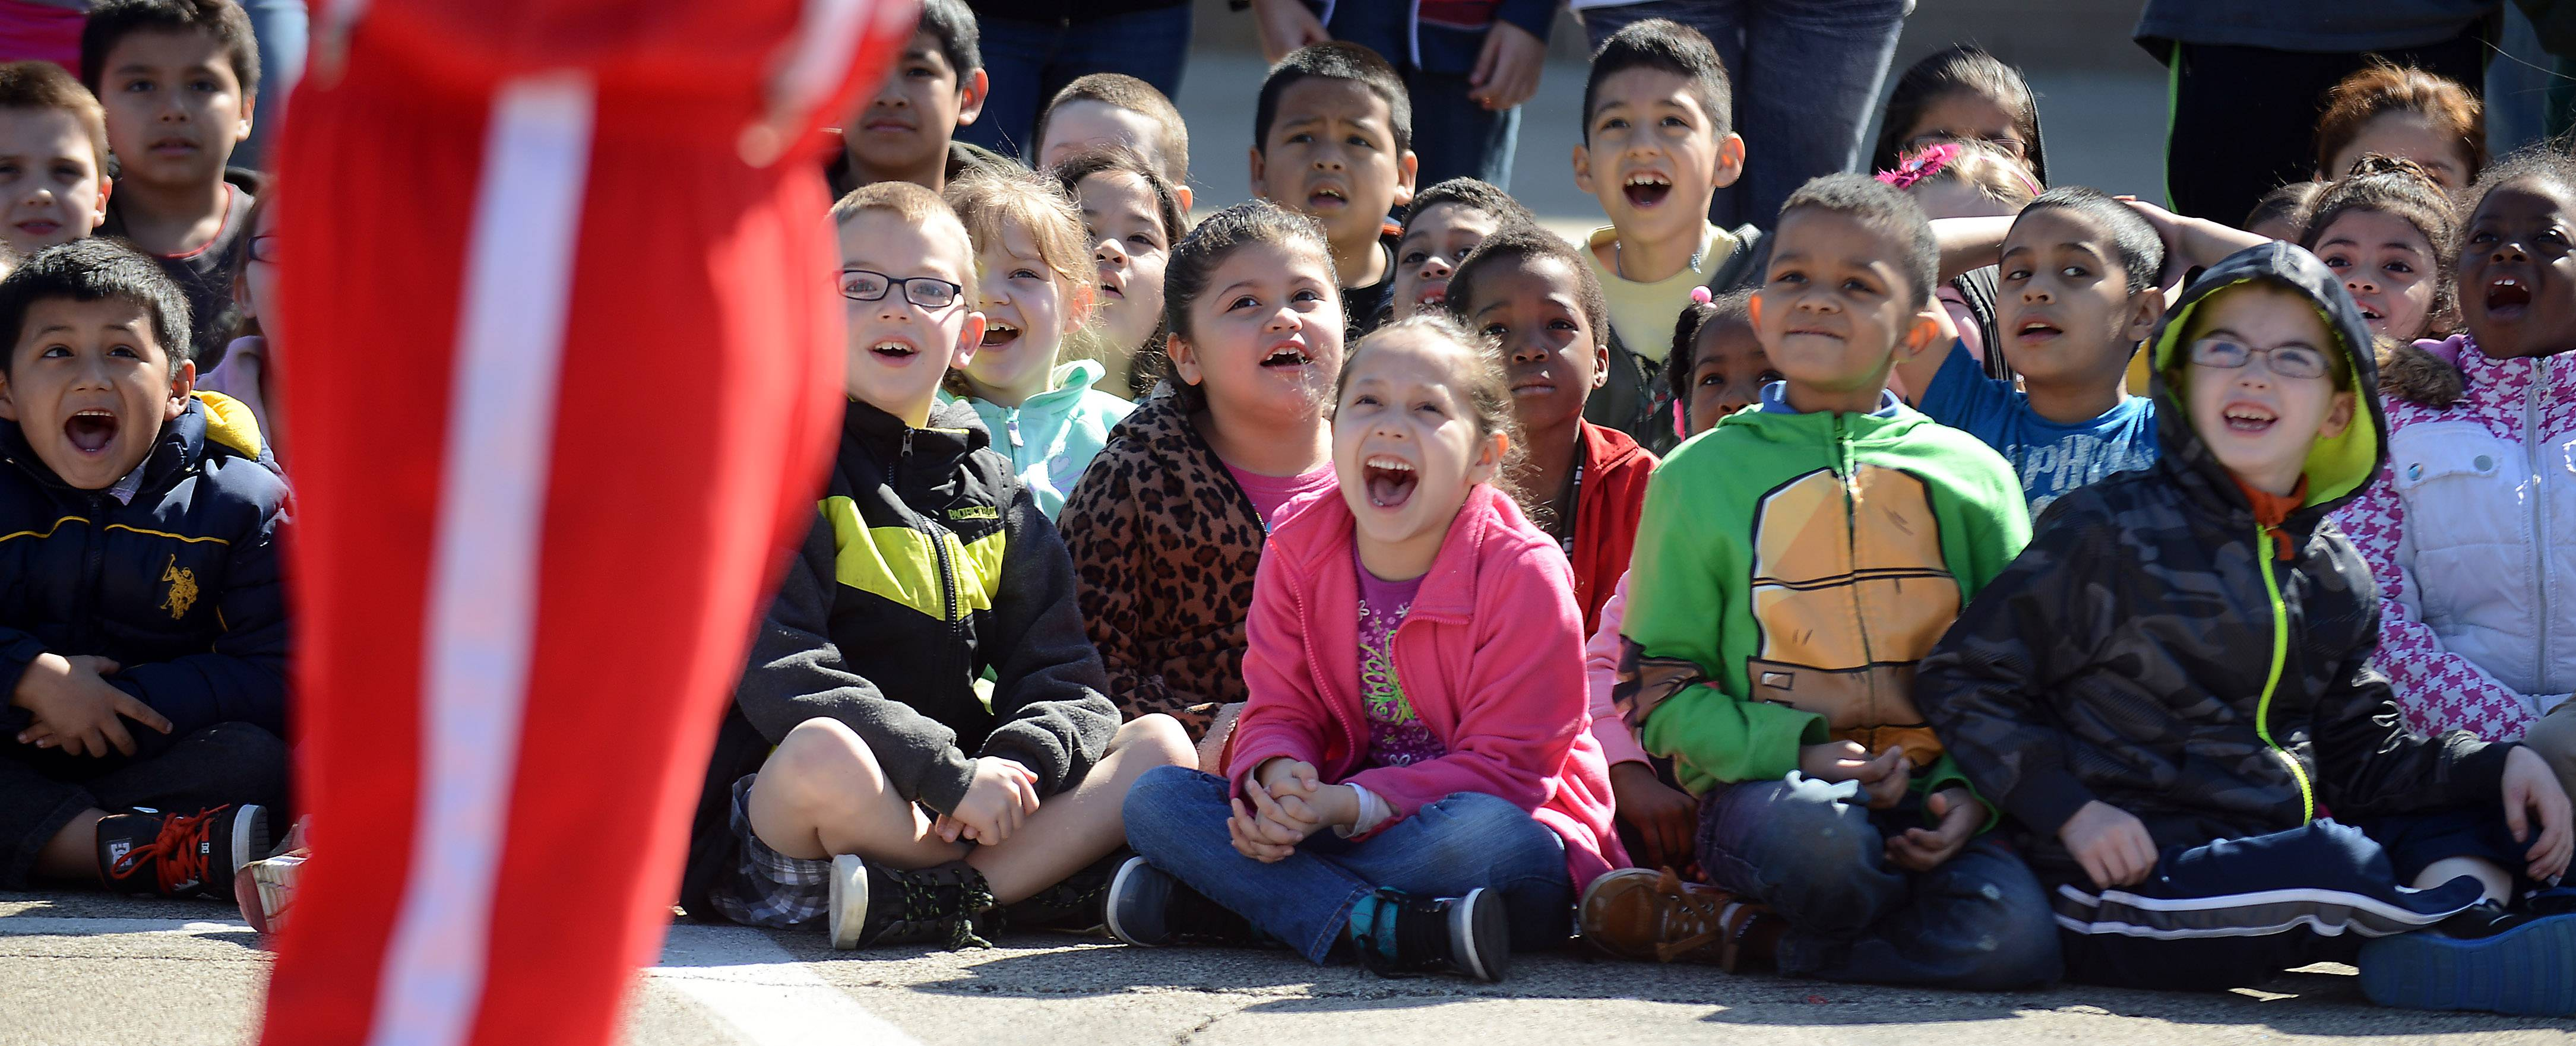 Students cheer loudly for tumblers Friday at Hillcrest Elementary School in Elgin.